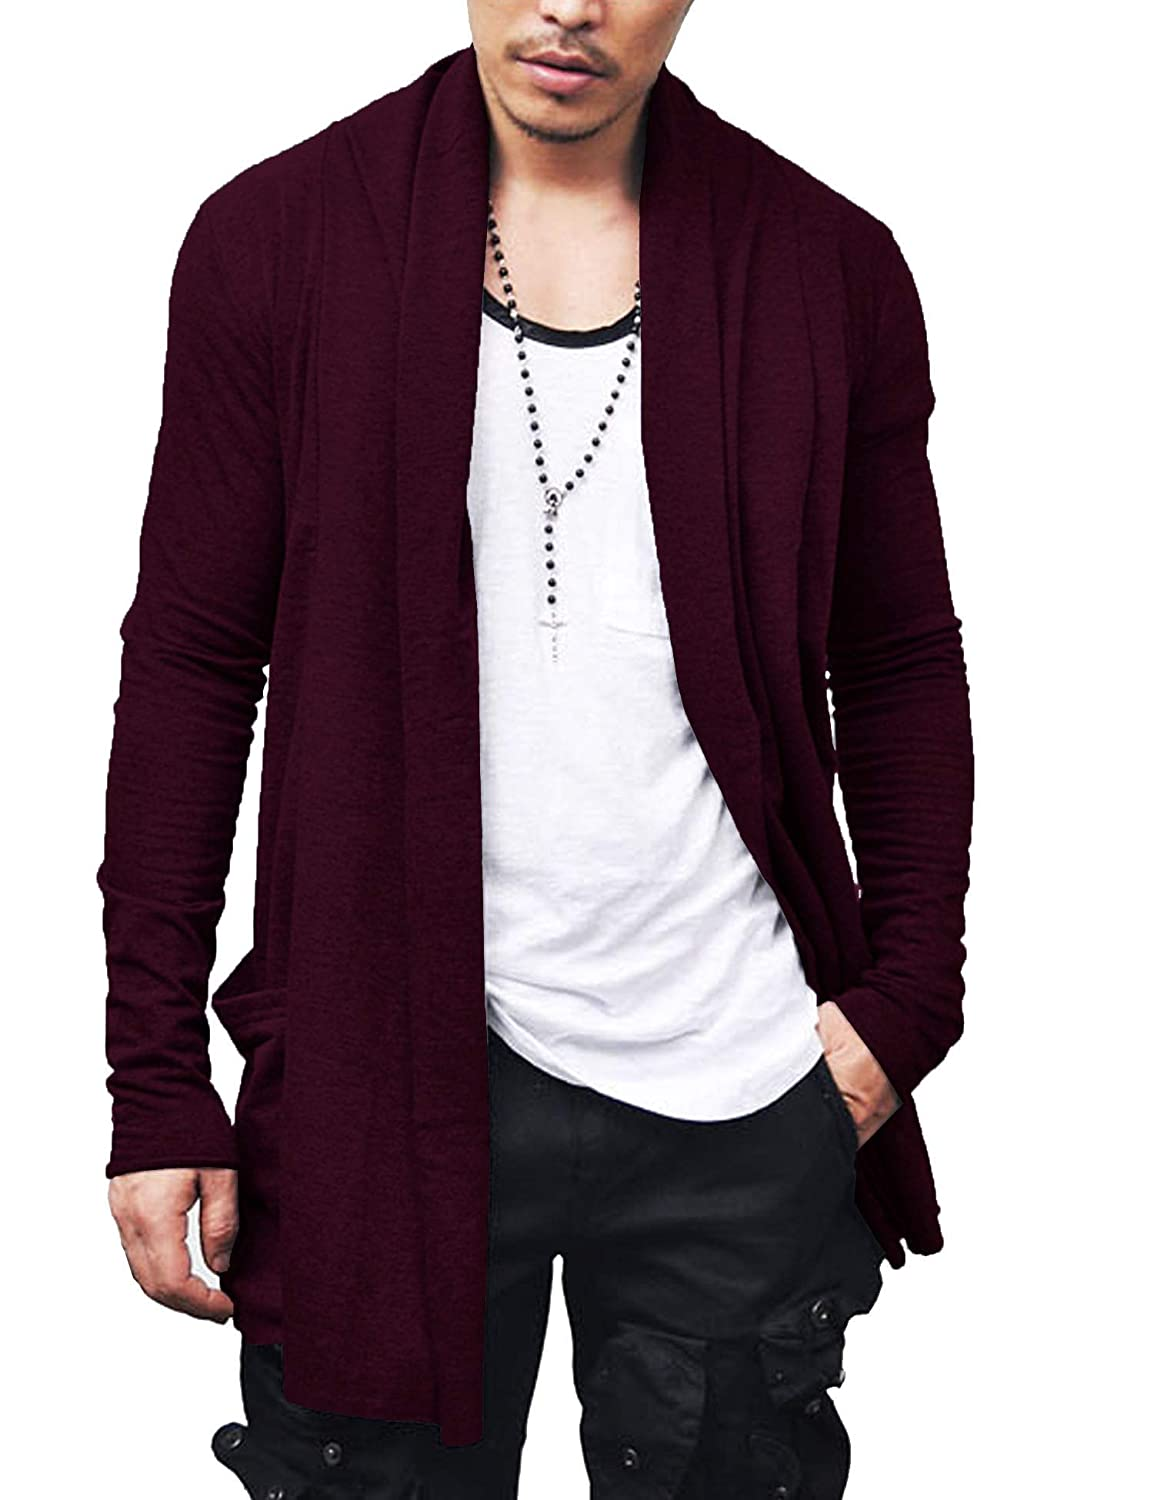 JINIDU Men's Ruffle Shawl Collar Cardigan Premium Cotton Blend Long Length Drape Cape Overcoat 112106294